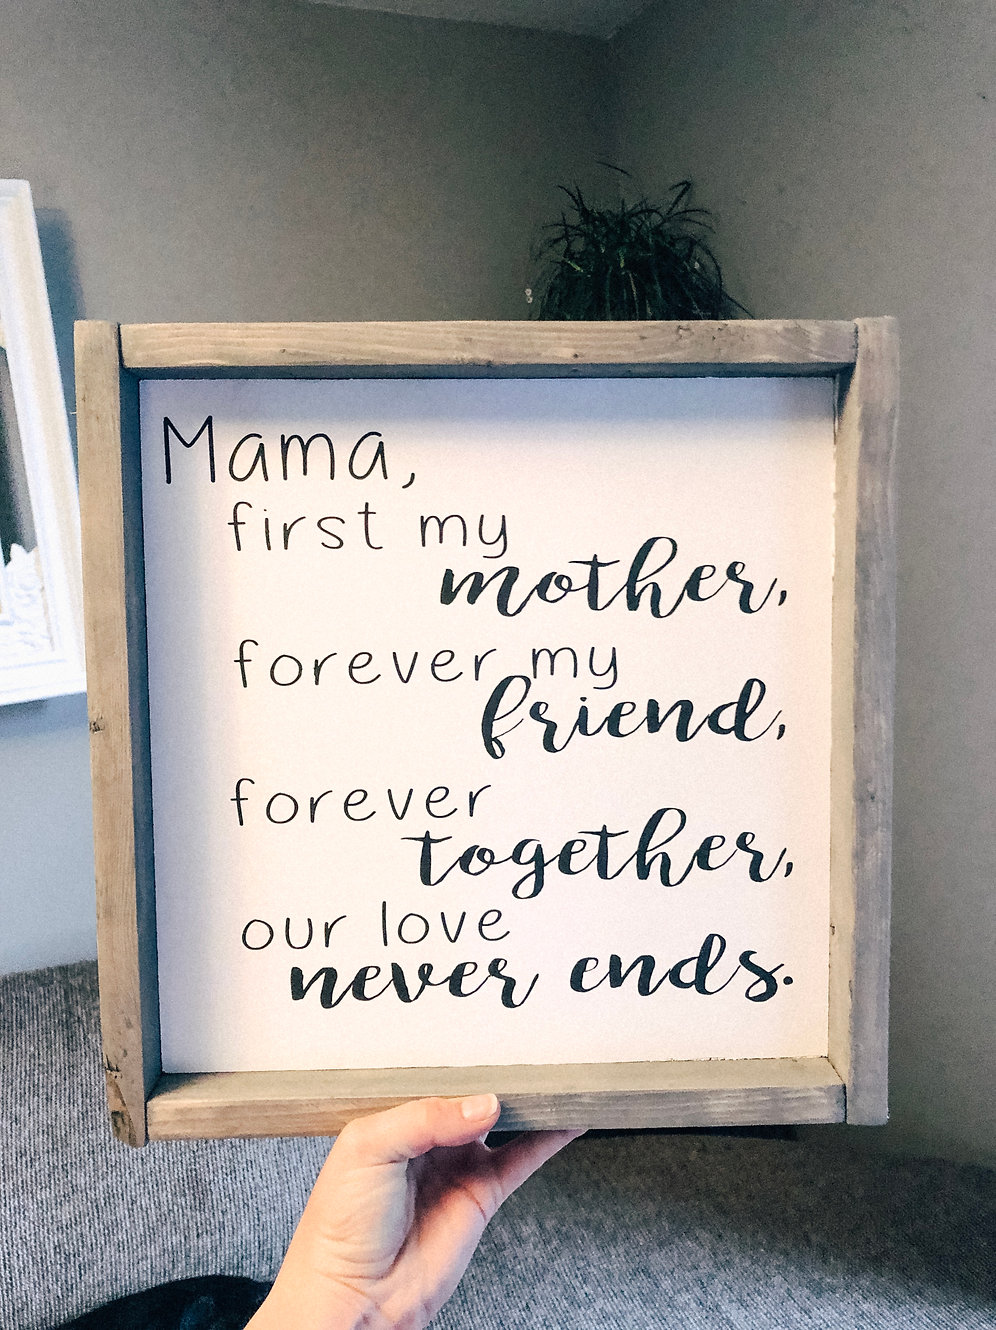 Mama, first my mother - our love never ends   Out Of The Woodz